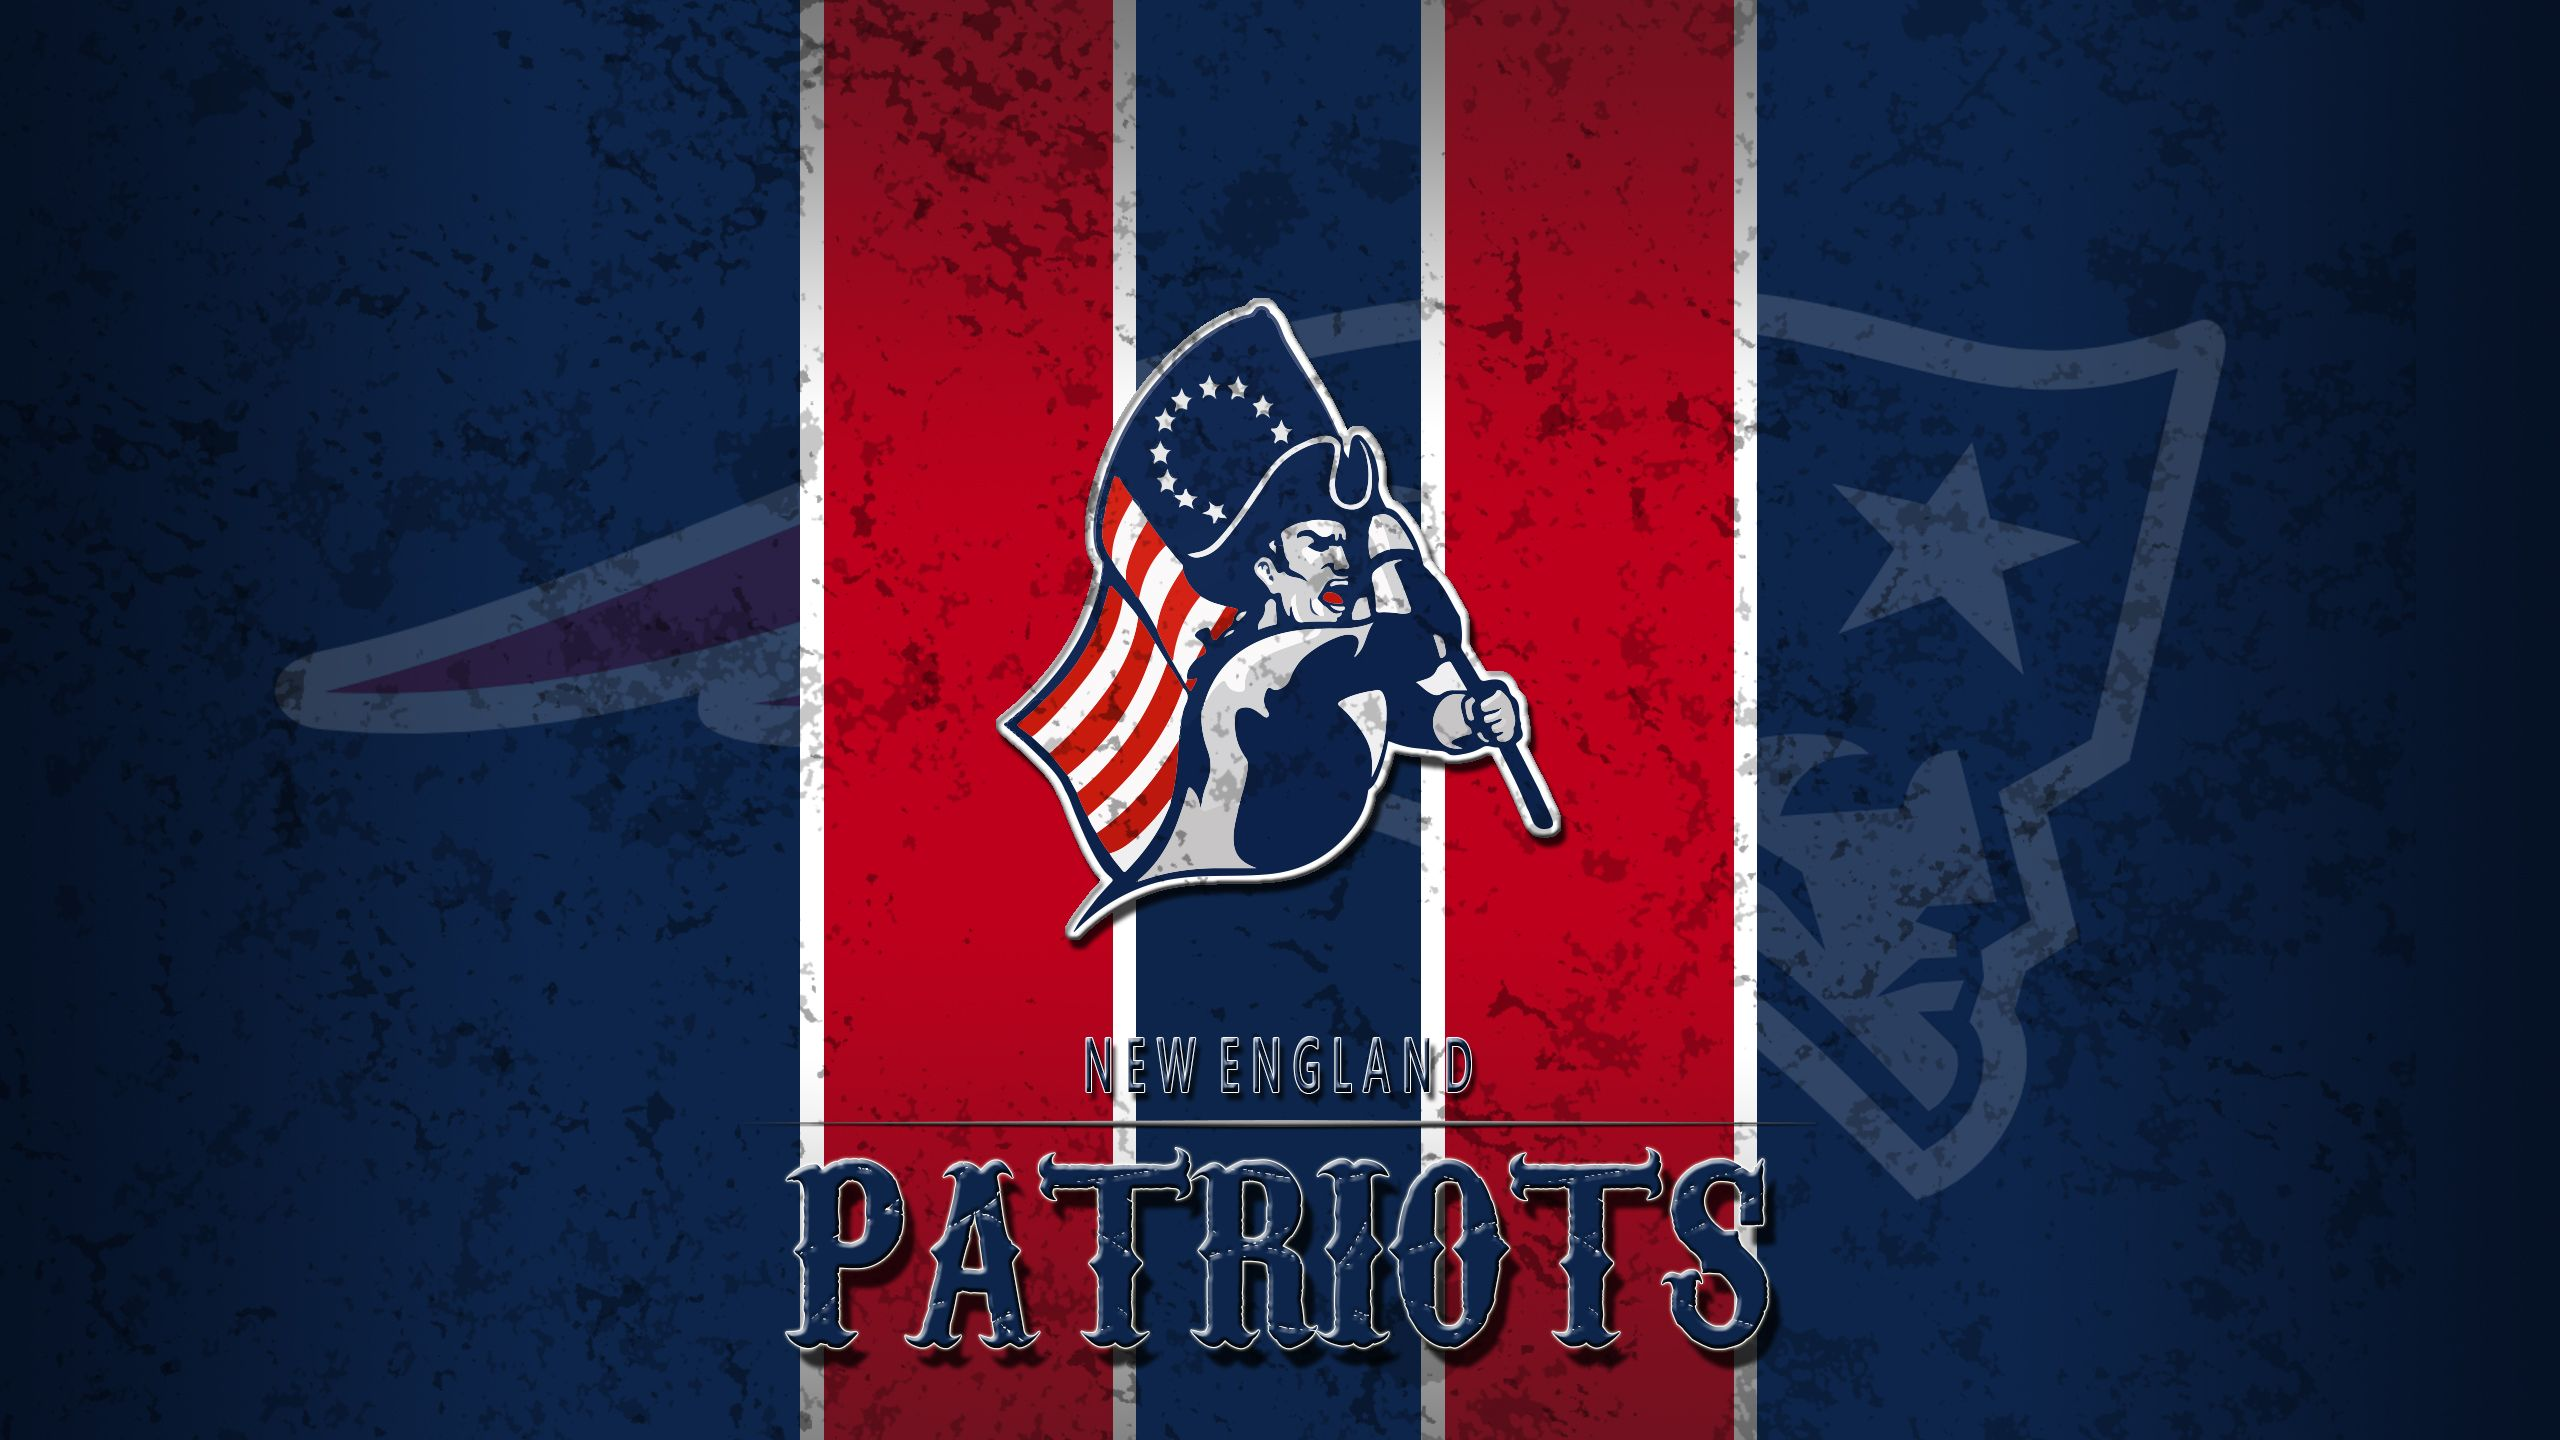 Hd New England Patriots Wallpapers And Photos, By Eloy - Hd New England Patriots - HD Wallpaper